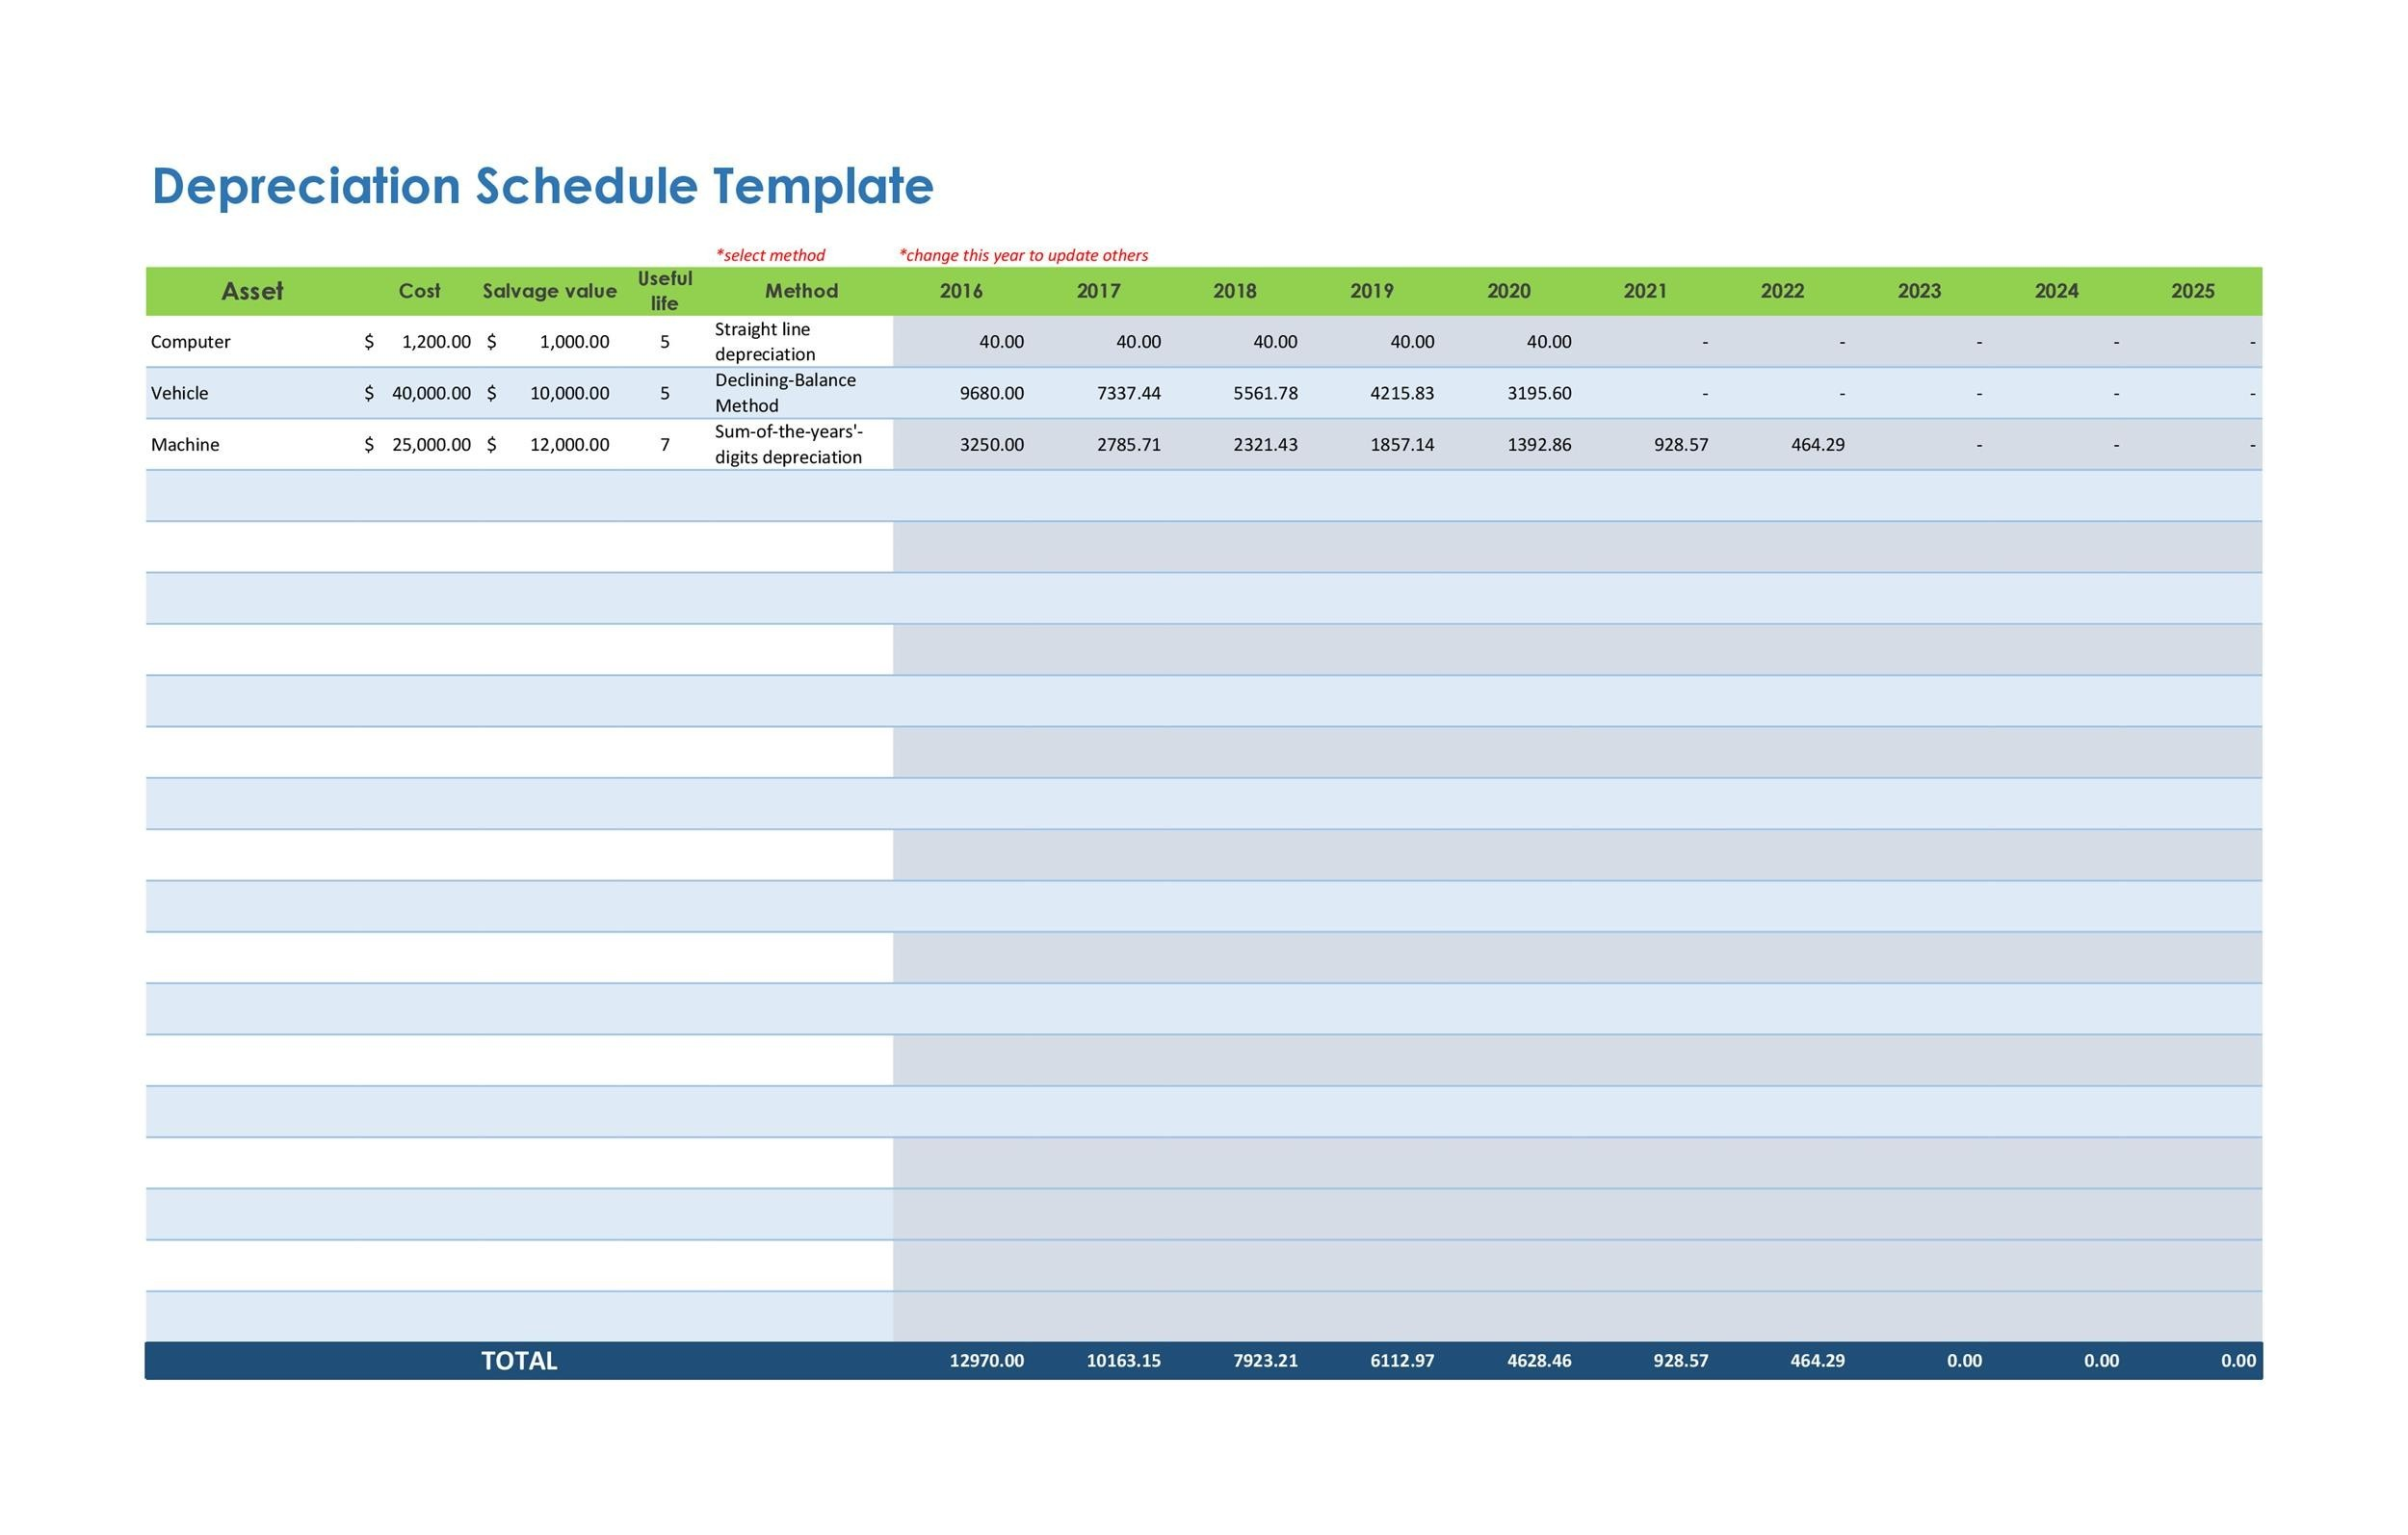 35 Depreciation Schedule Templates For Rental Property